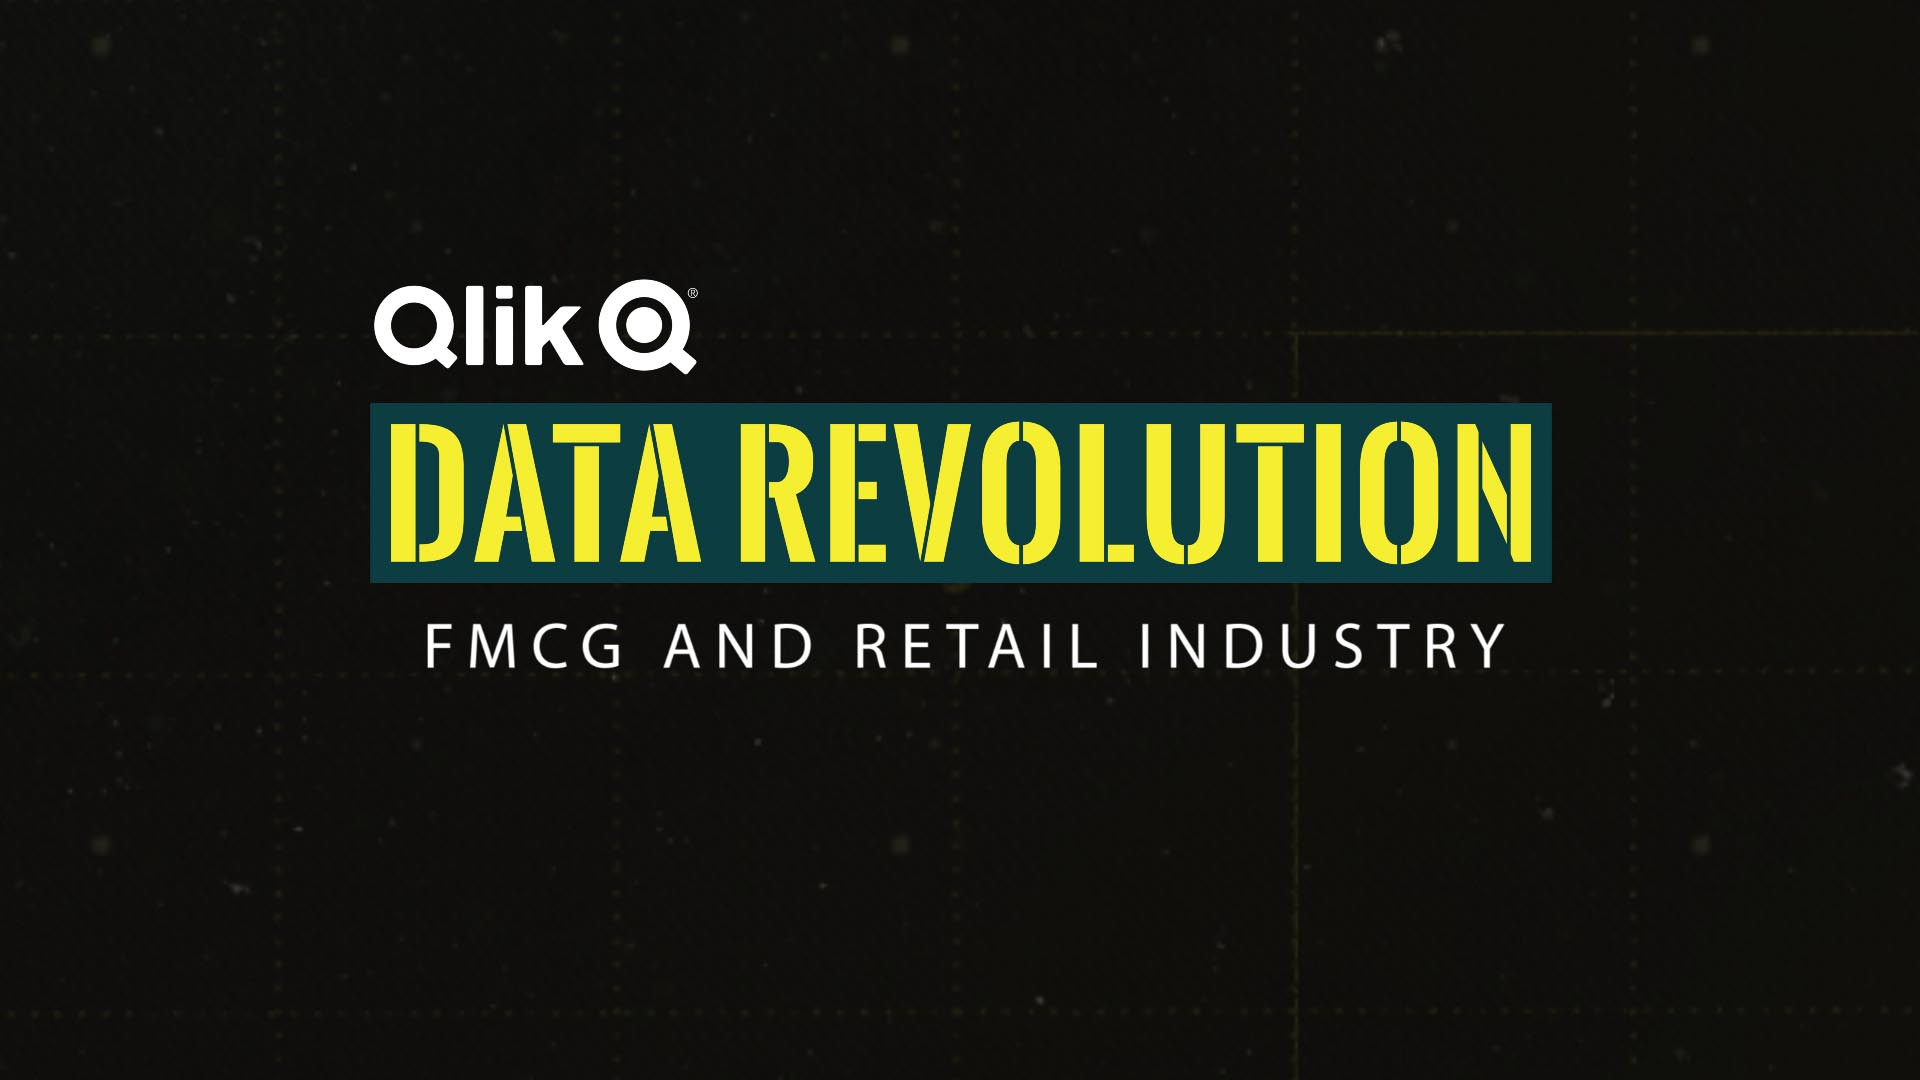 Qlik for FMCG/Retail